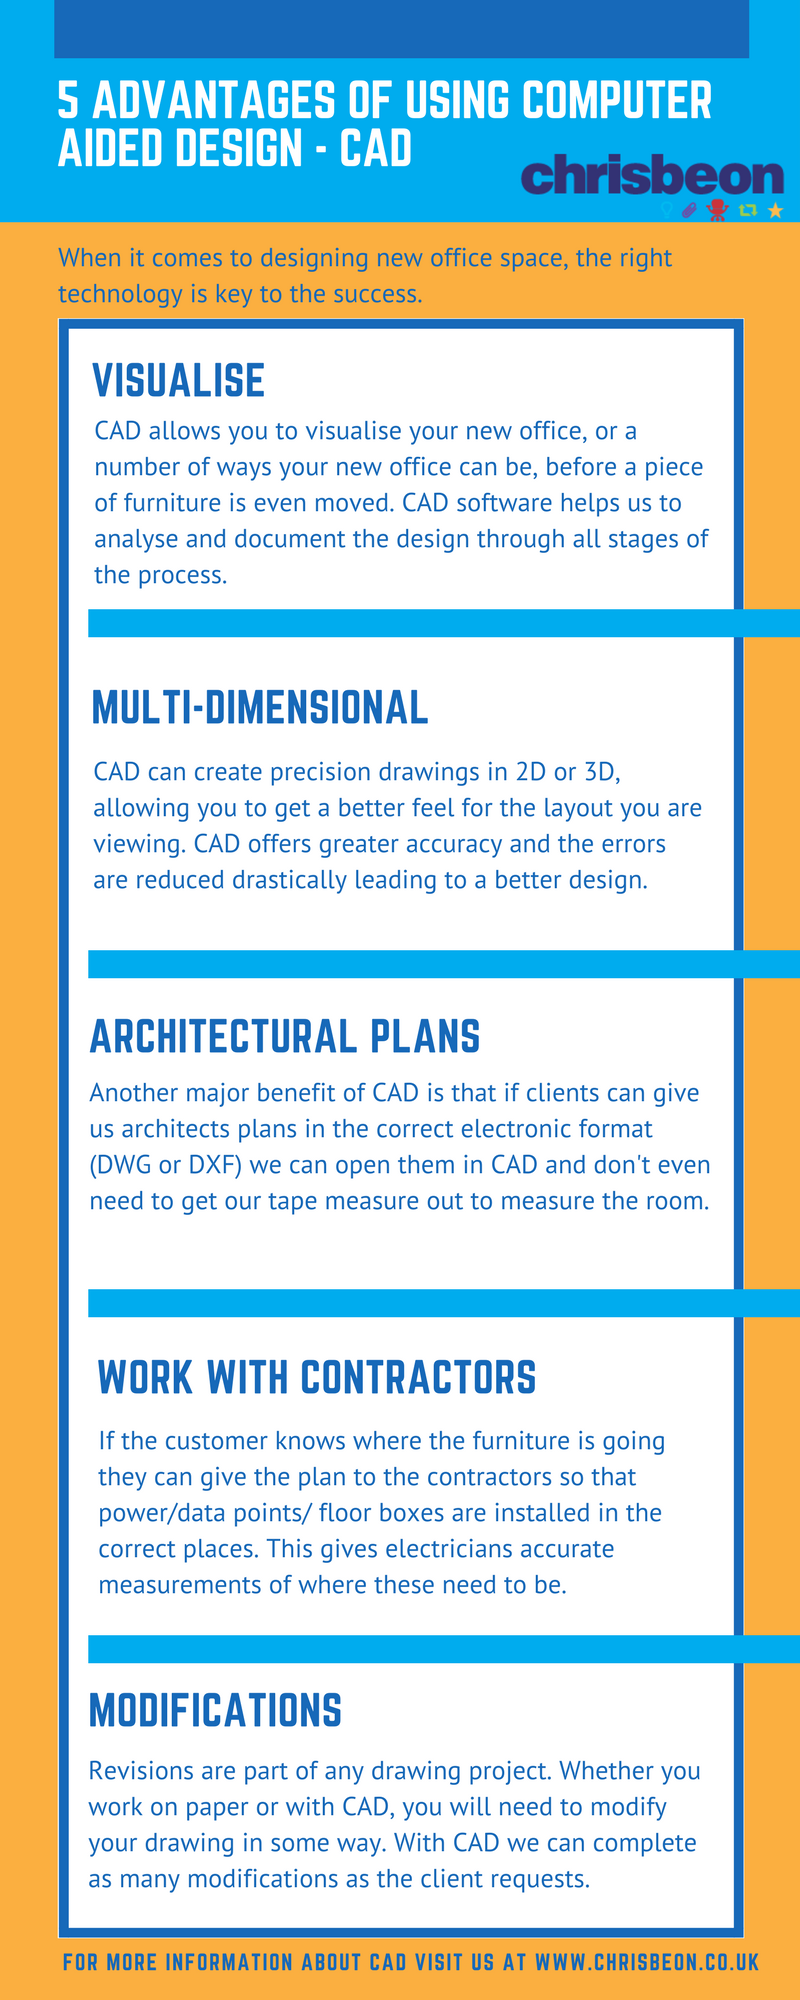 5 advantages of using CAD